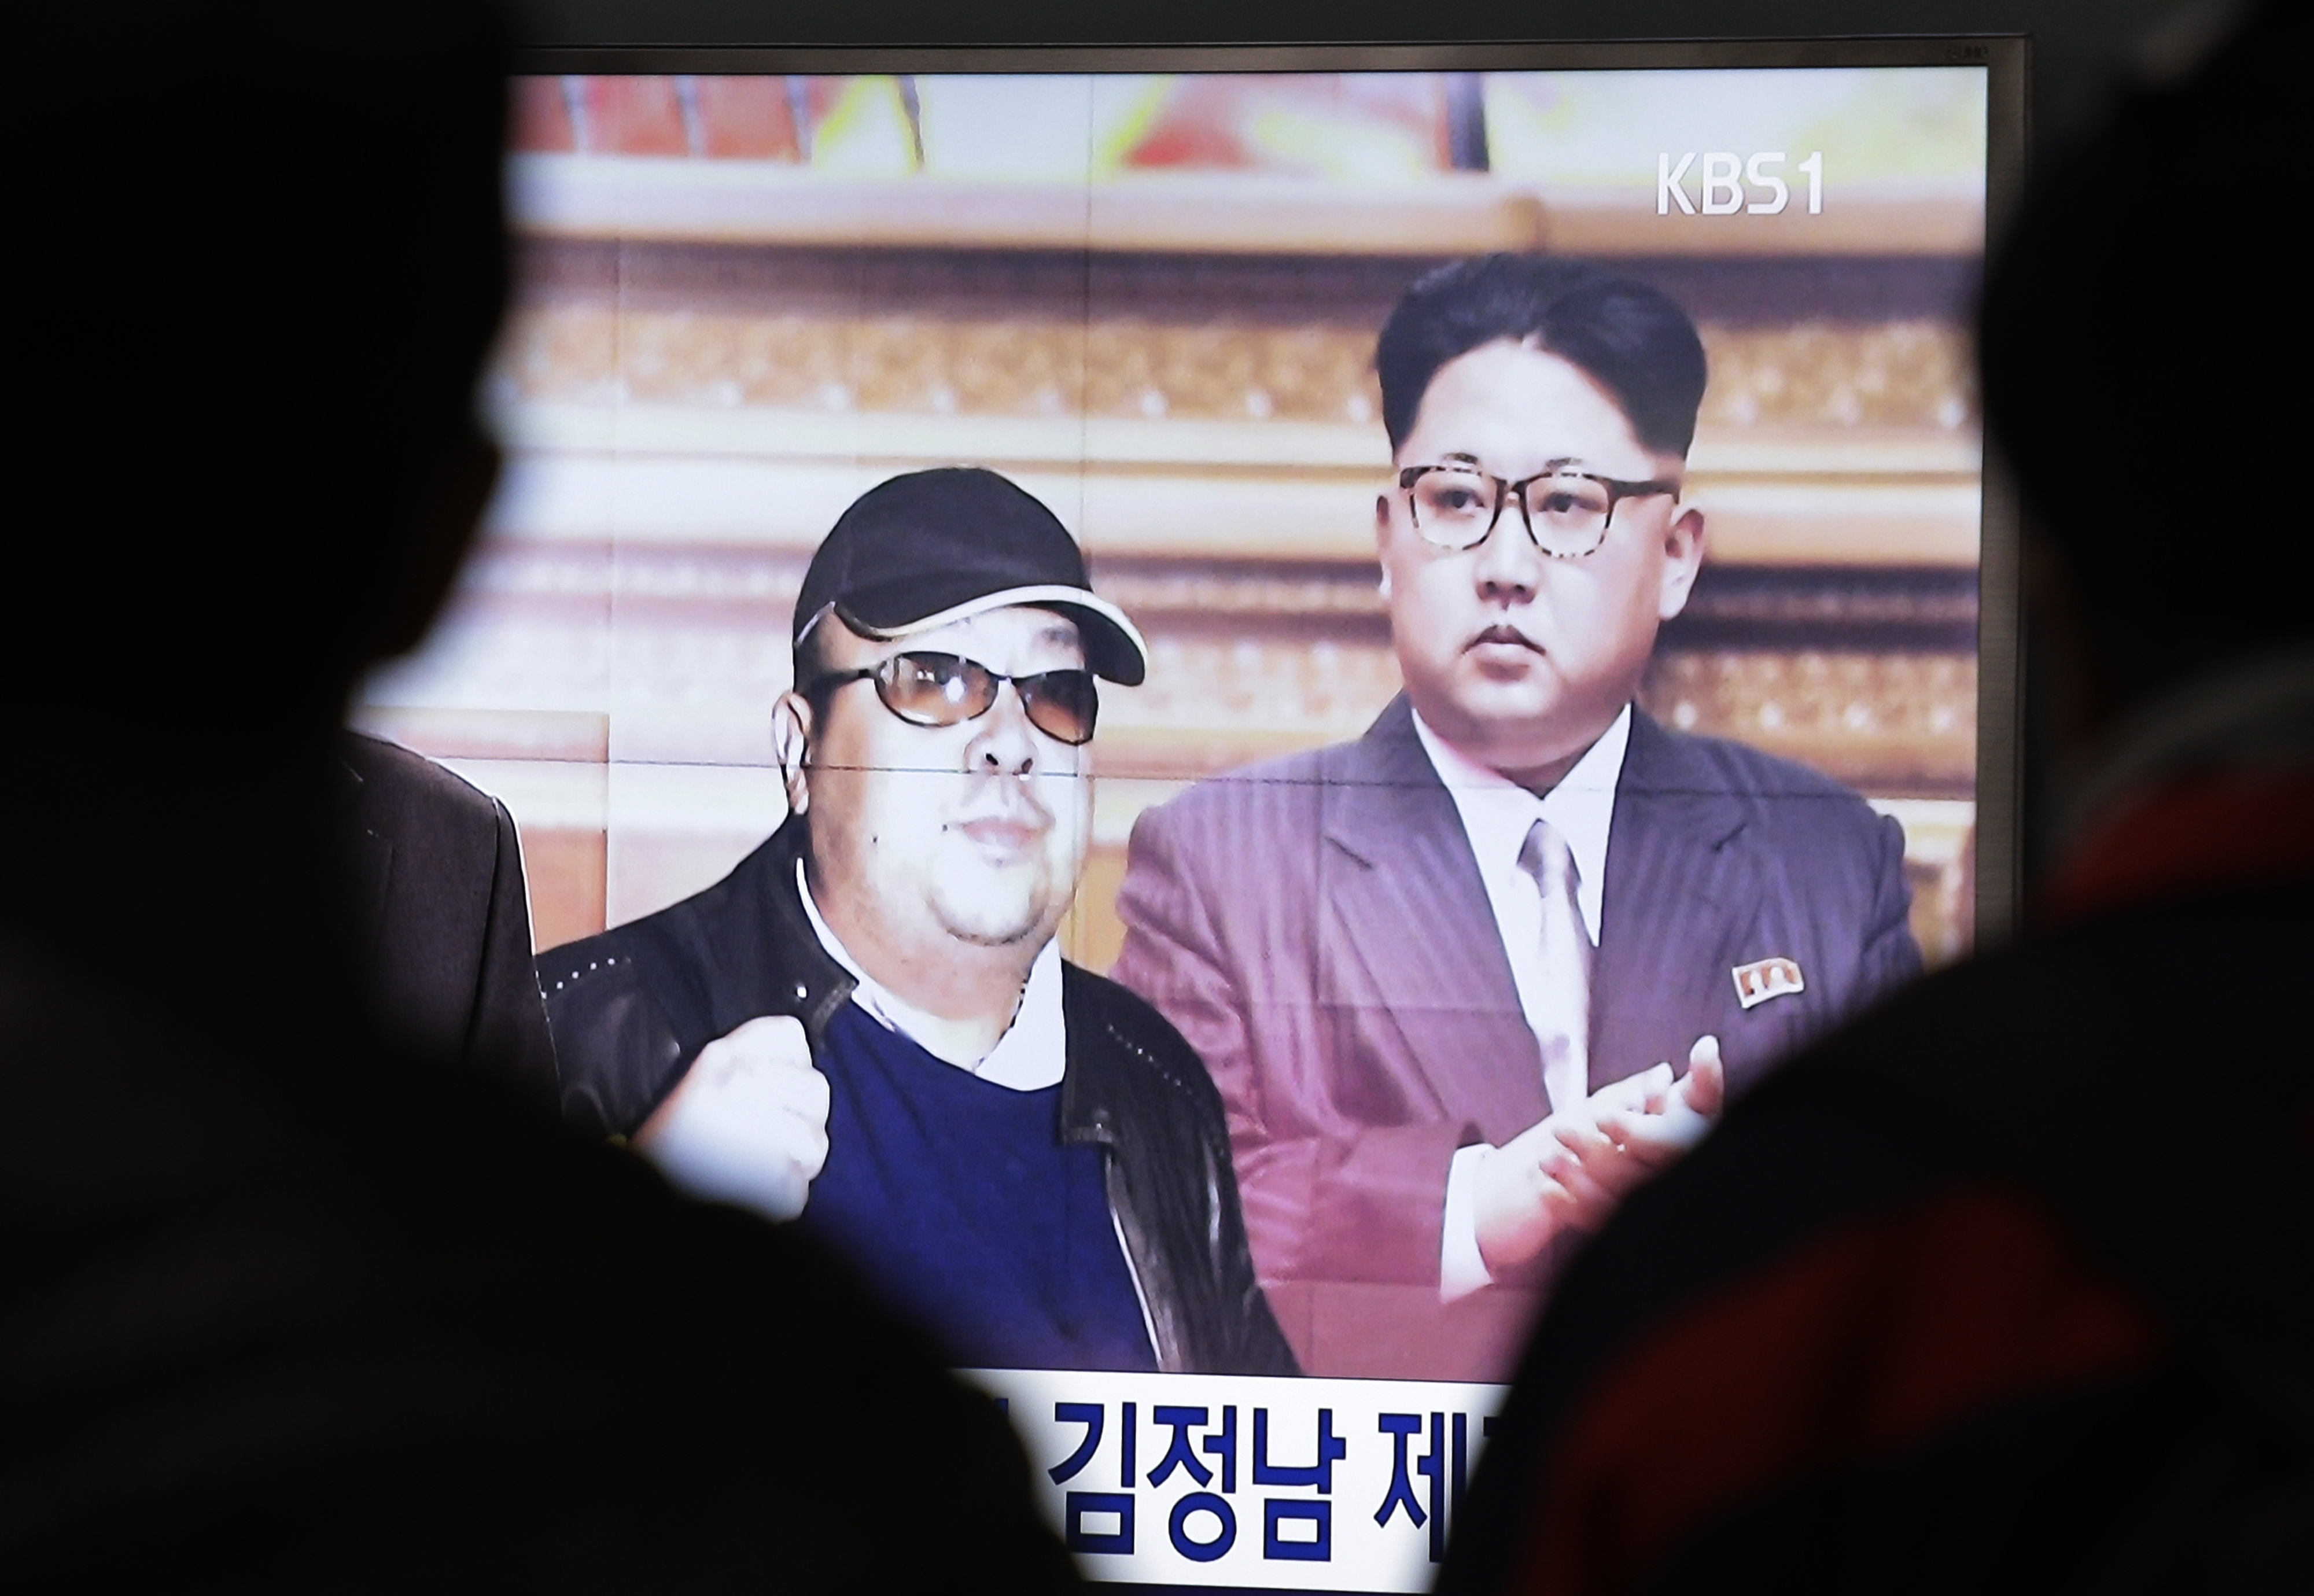 Family, Friends Describe 'Nice Girl' Embroiled in Kim Case